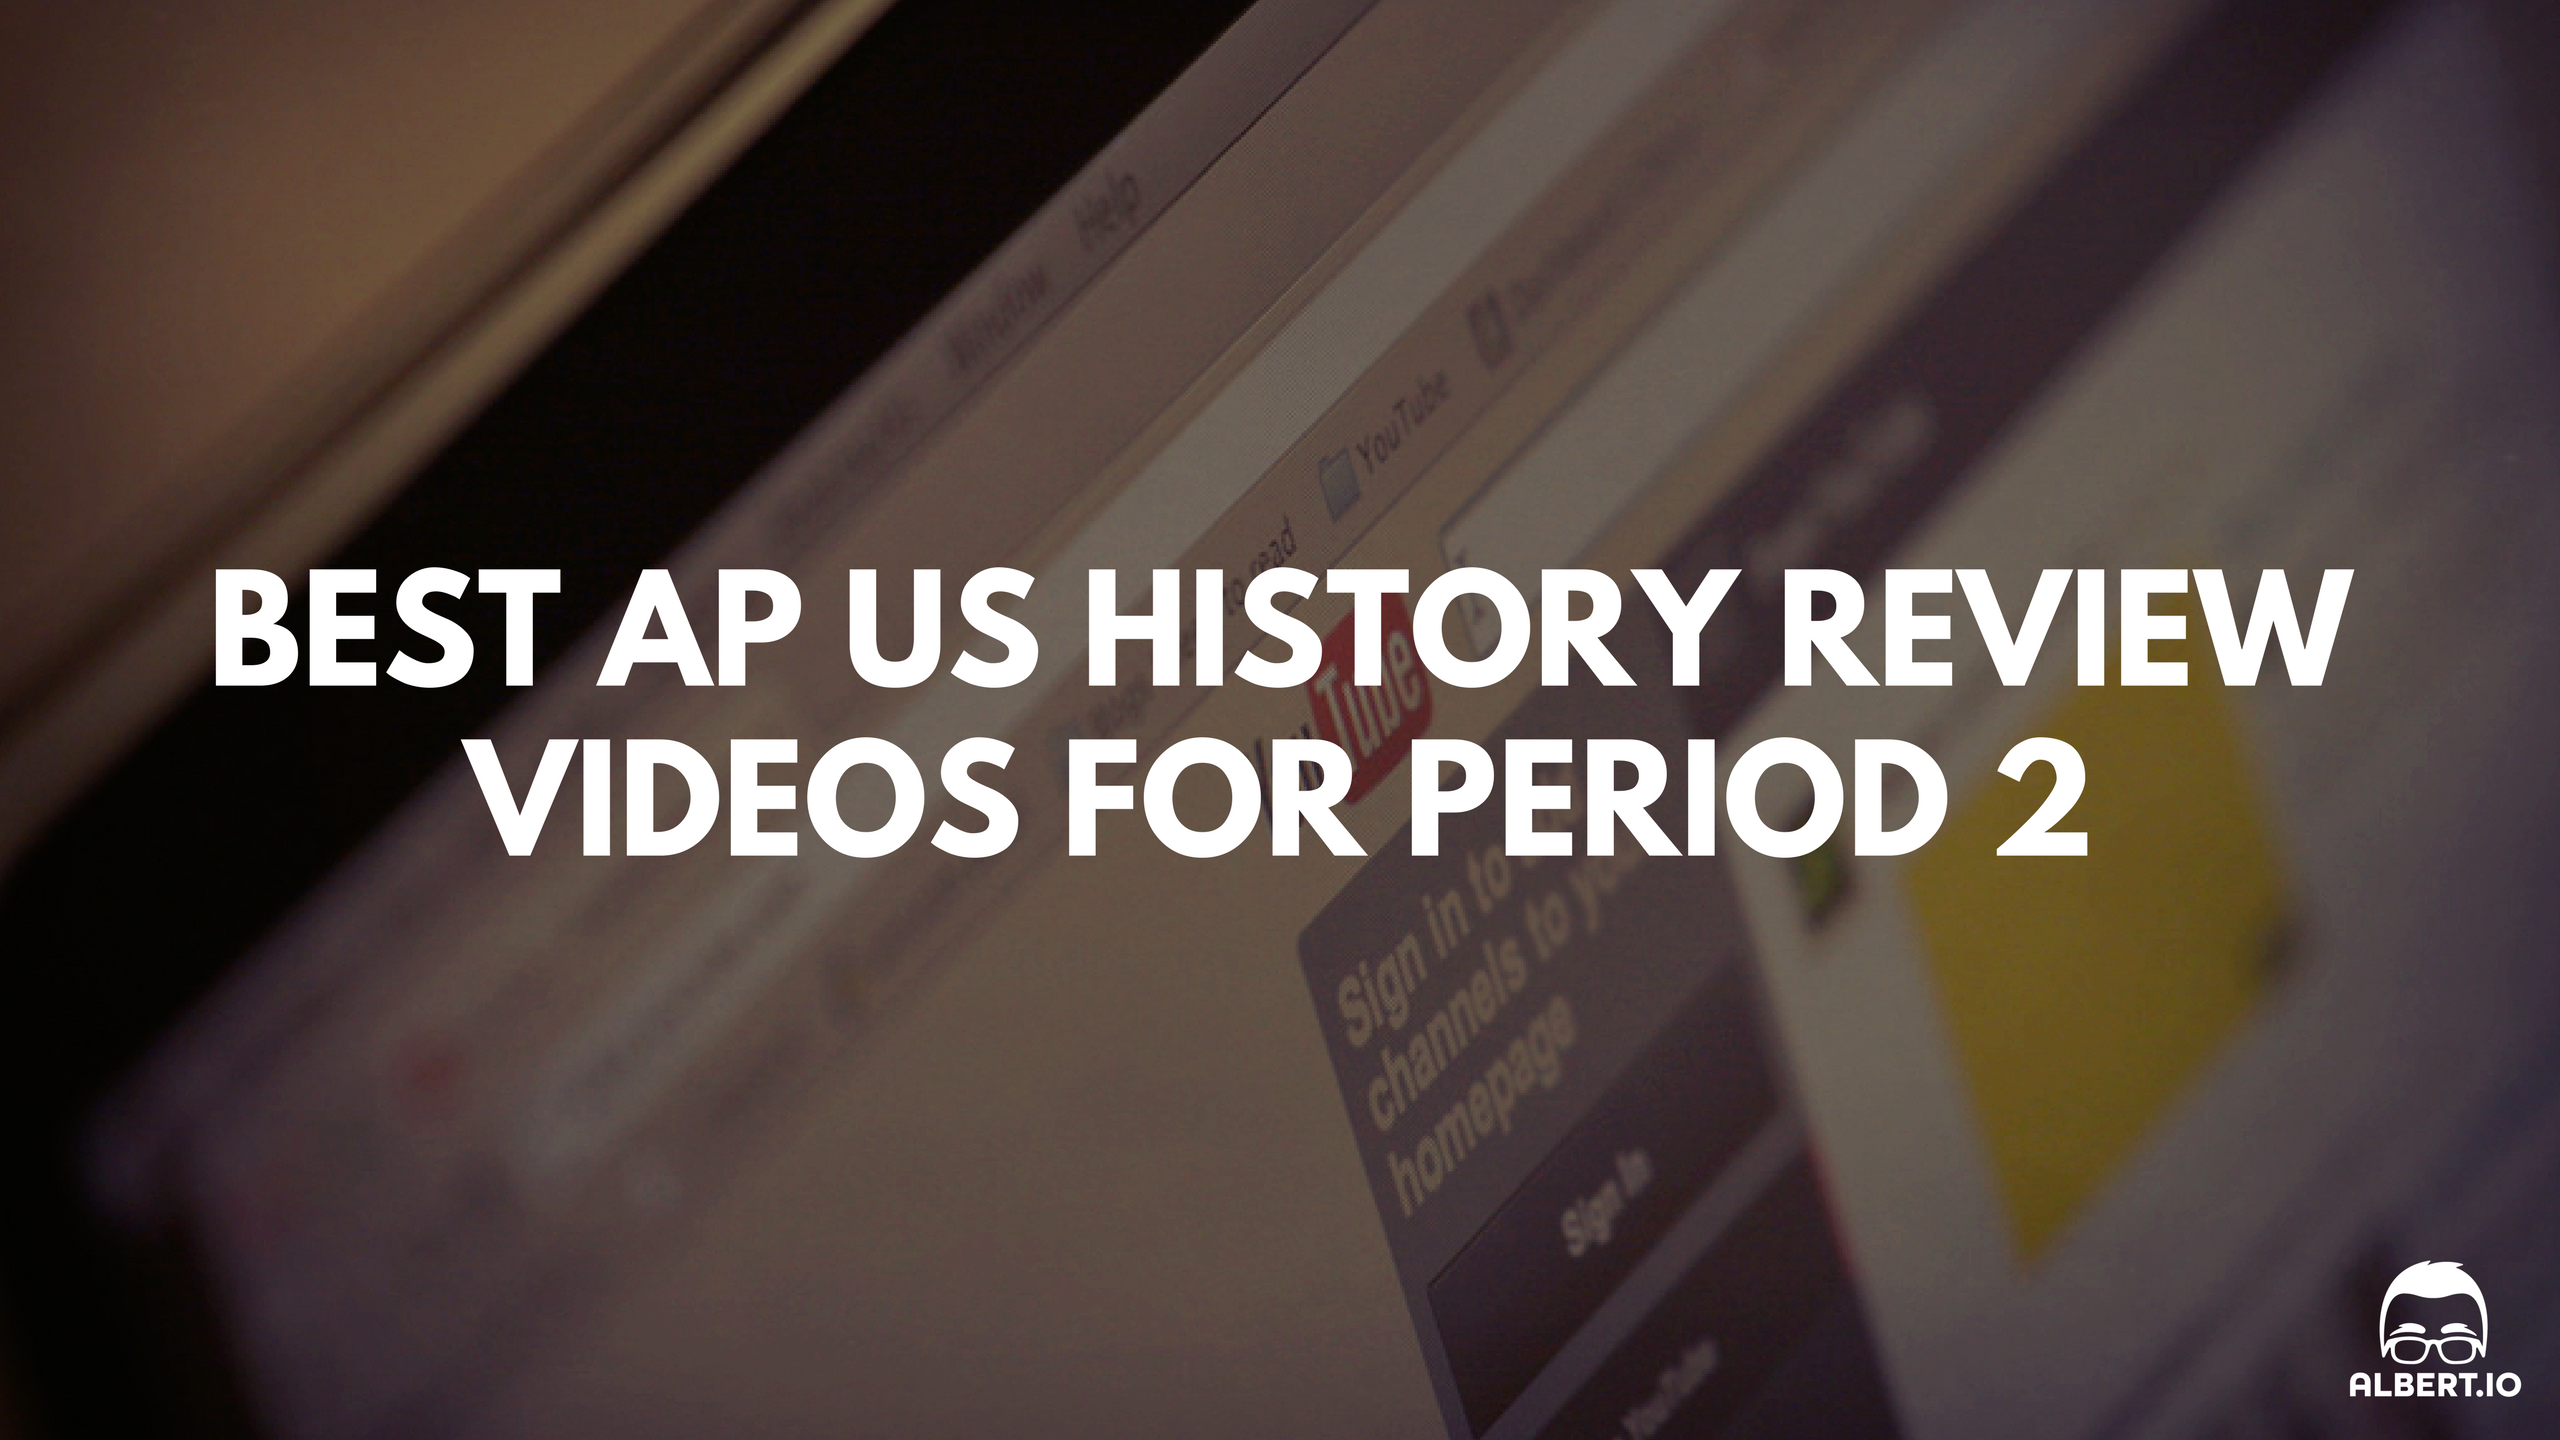 Best AP US History Review Videos: Adam Norris' APUSH Review